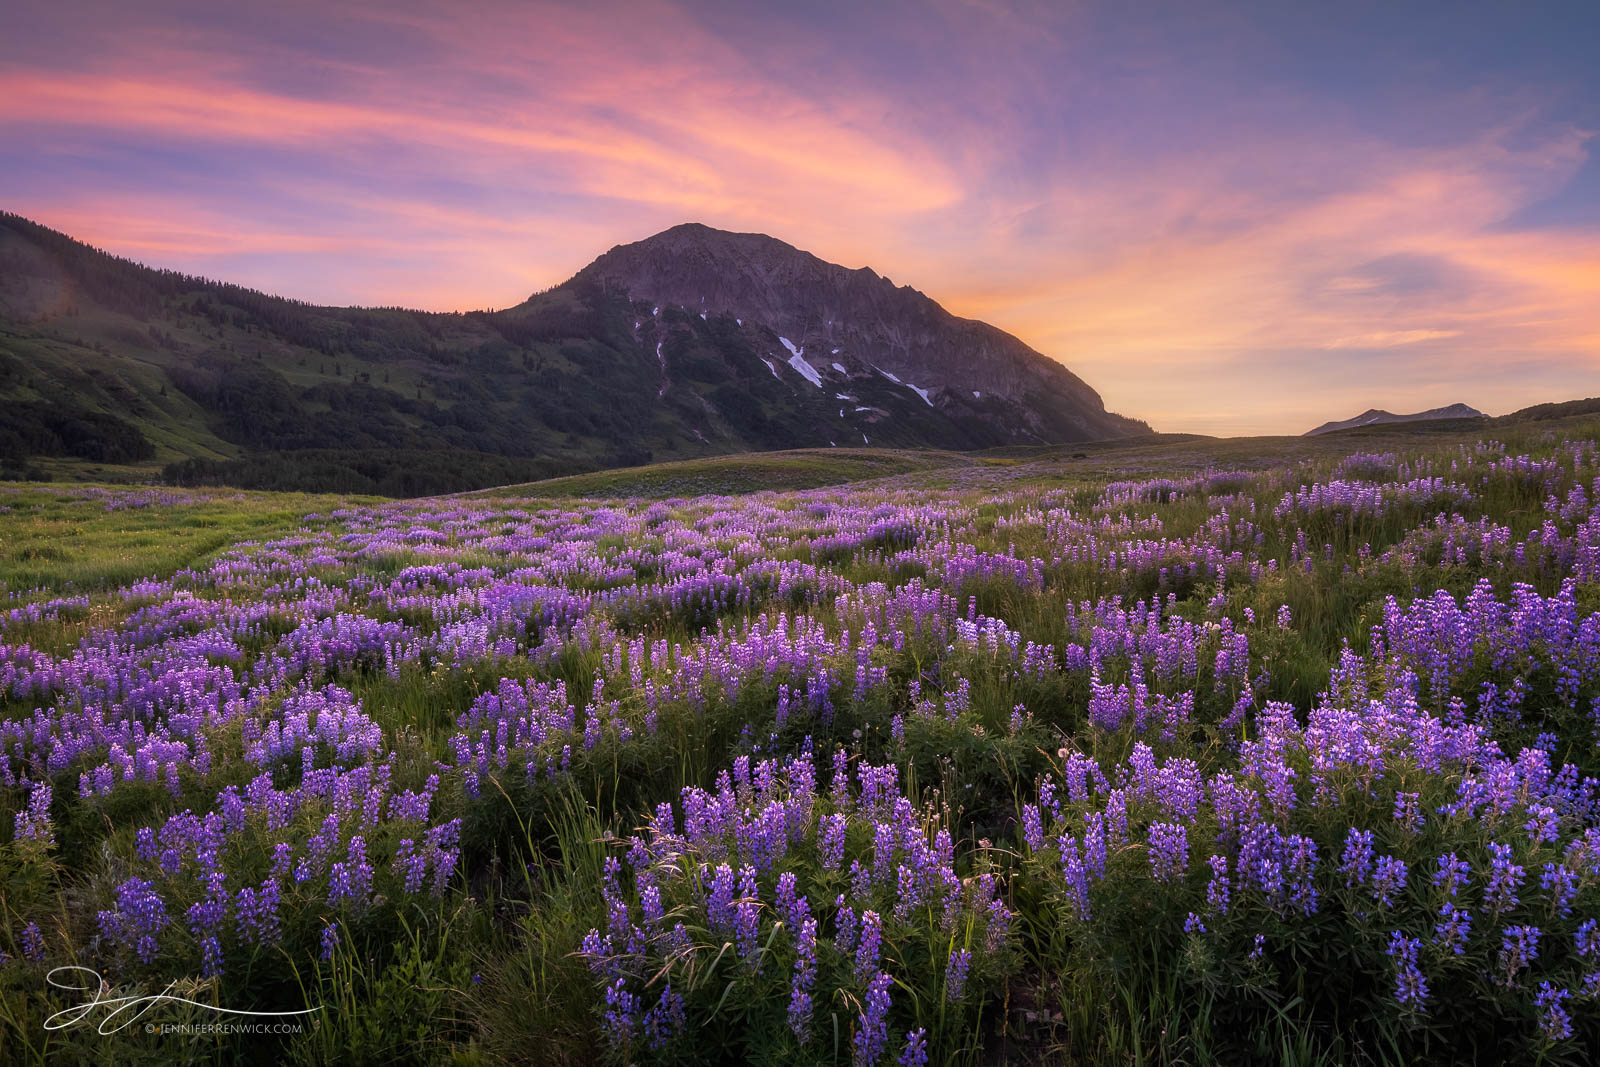 An explosion of lupine wildflowers covers a field during sunset near Gothic Mountain in Crested Butte.